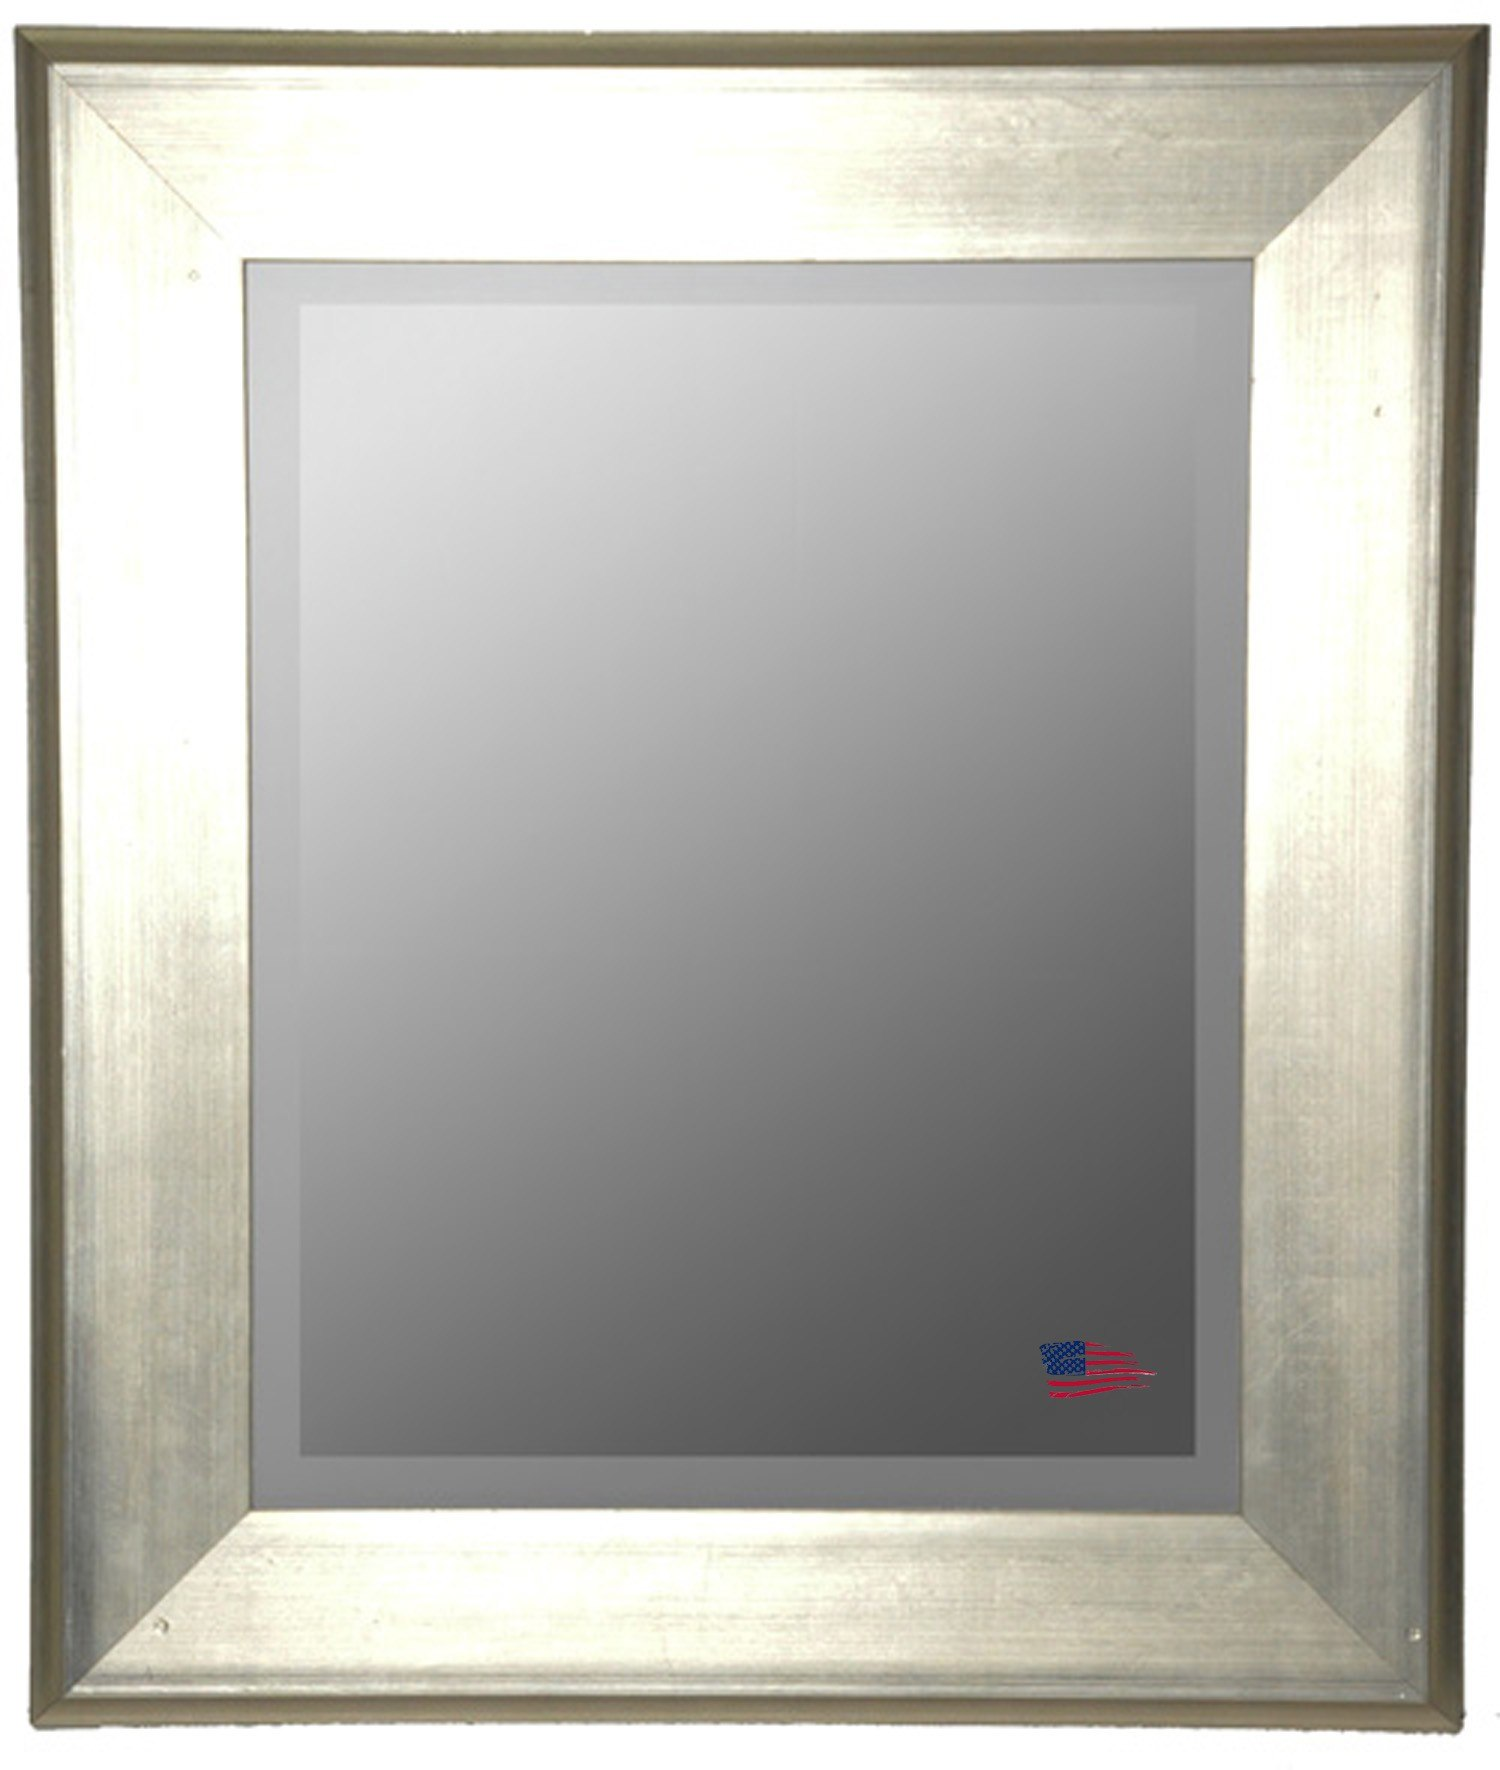 Rayne Mirrors R004M 30.5 x 36.5 Inch Brushed Silver Wall Mirror